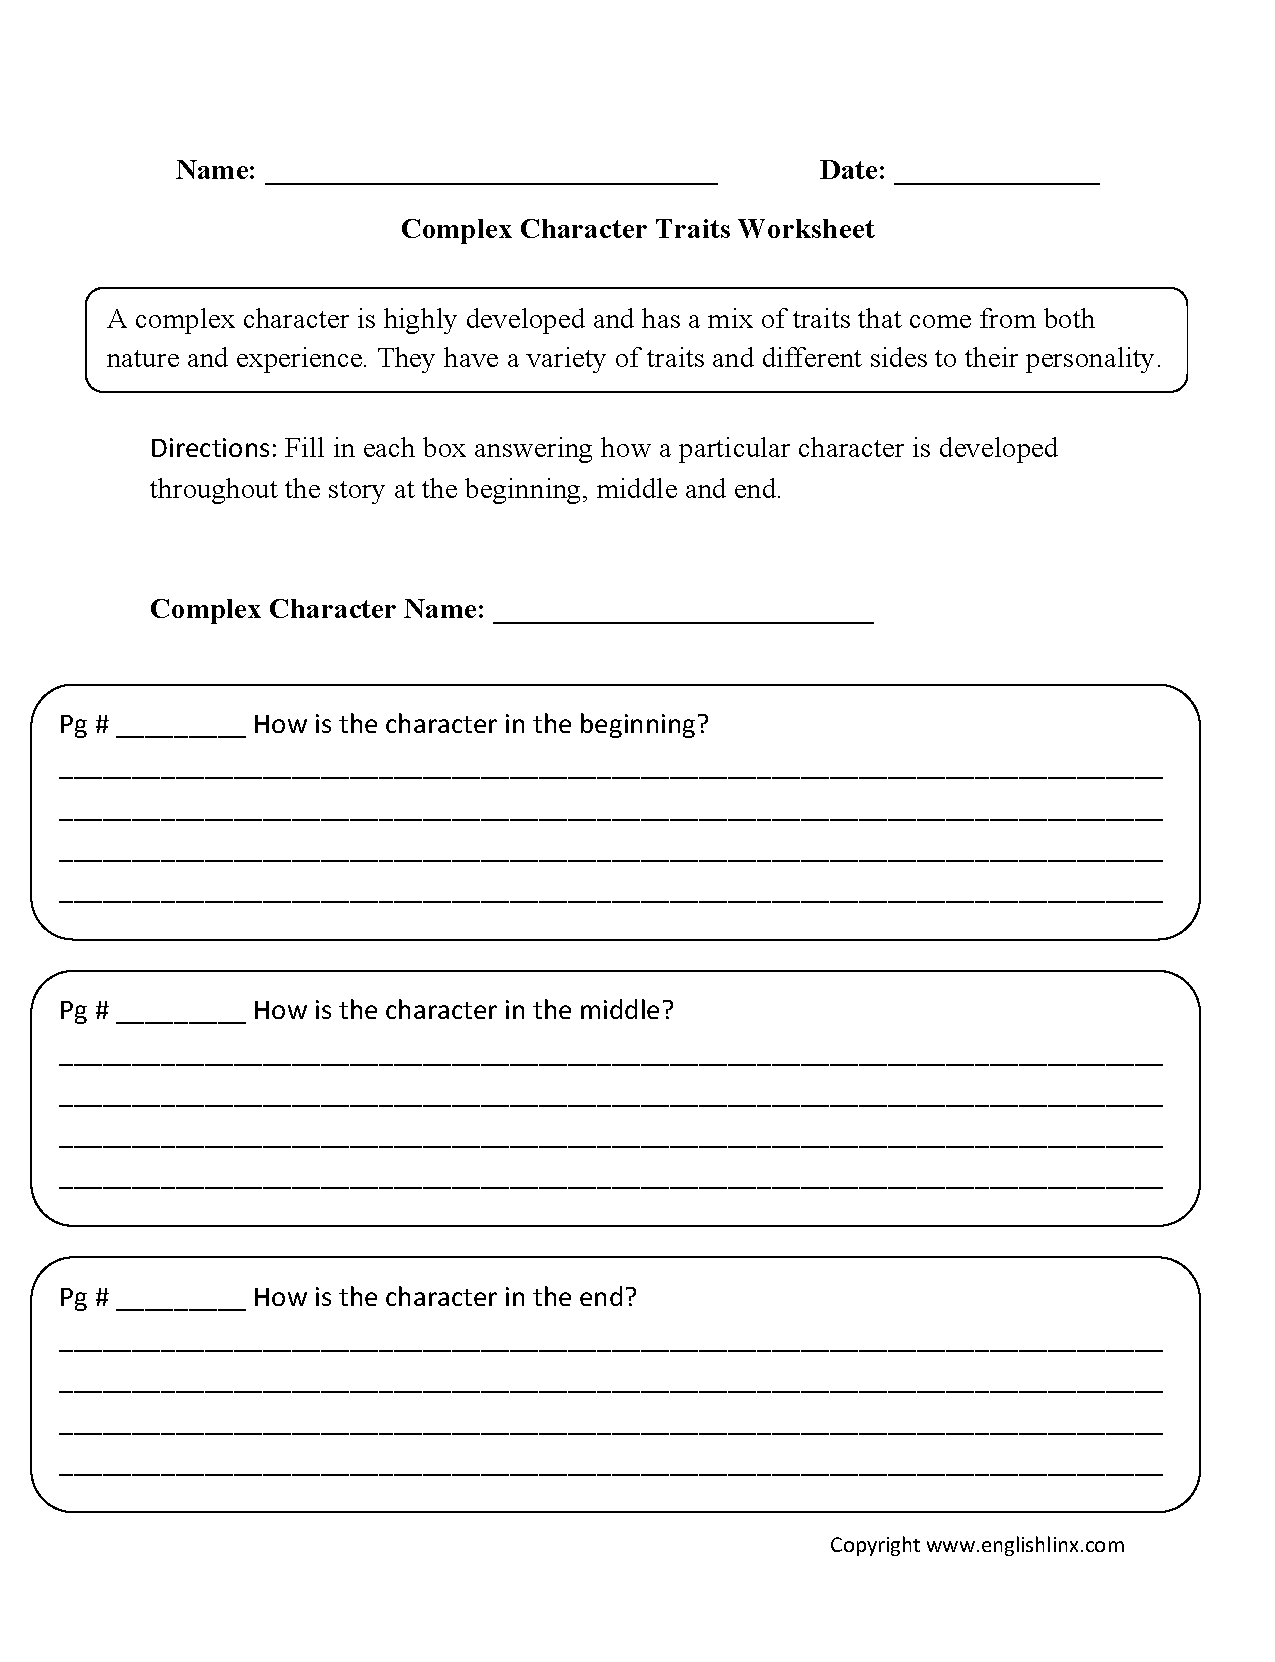 worksheet Character Trait Worksheets reading worksheets character traits complex worksheets